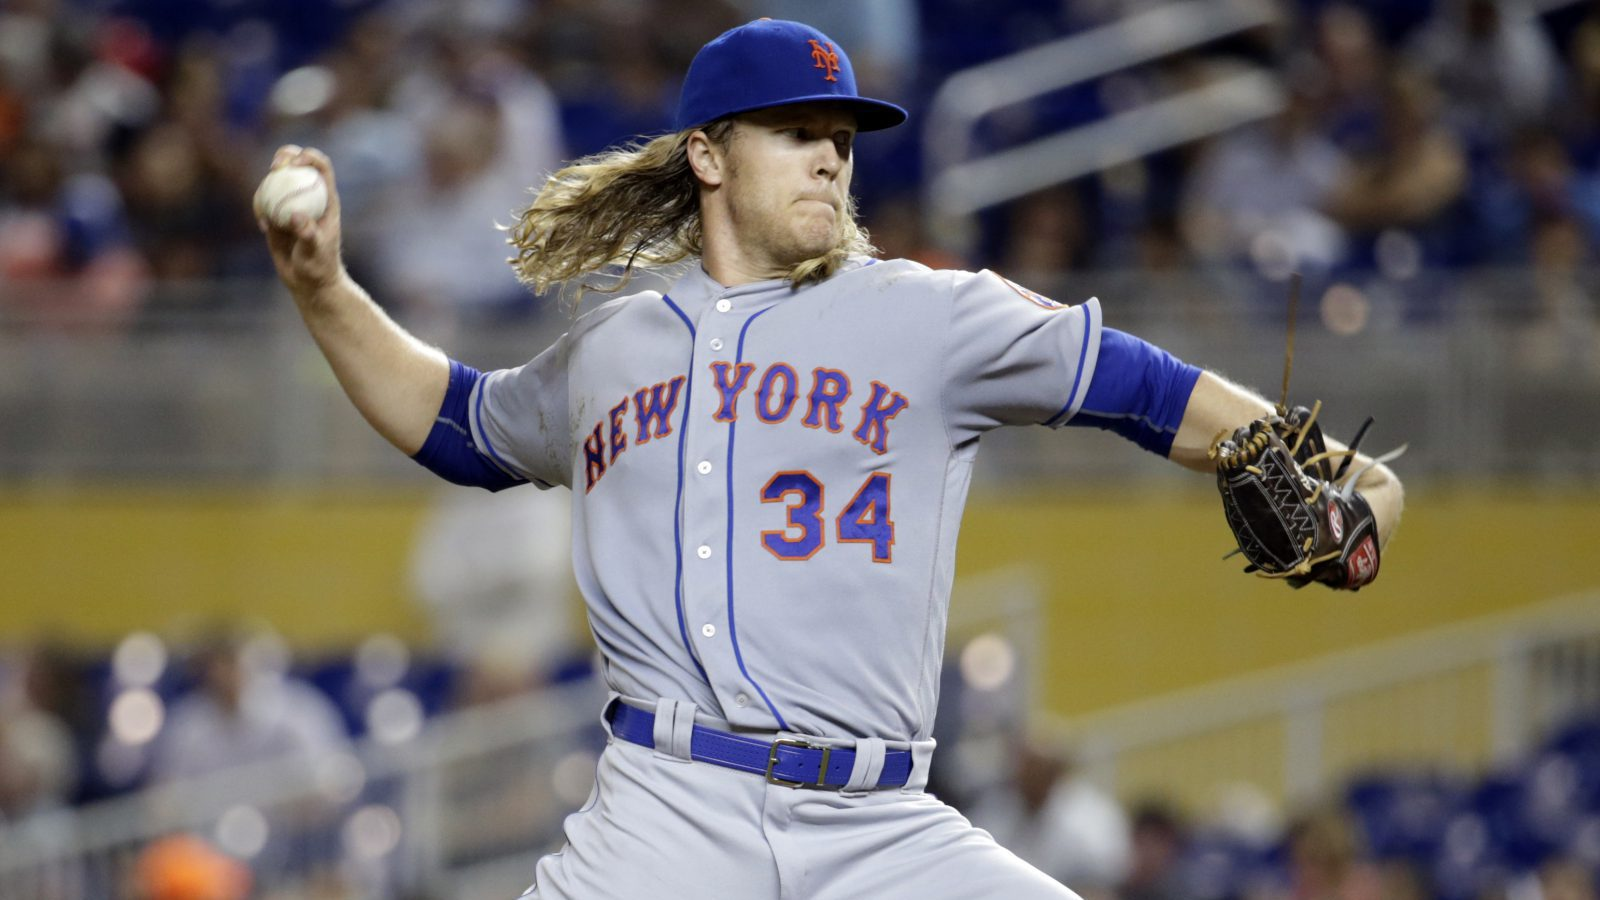 New York Mets starting pitcher Noah Syndergaard (34) throws in the fourth inning during a baseball game against the Miami Marlins, Tuesday, Sept. 27, 2016, in Miami. (AP Photo/Lynne Sladky)